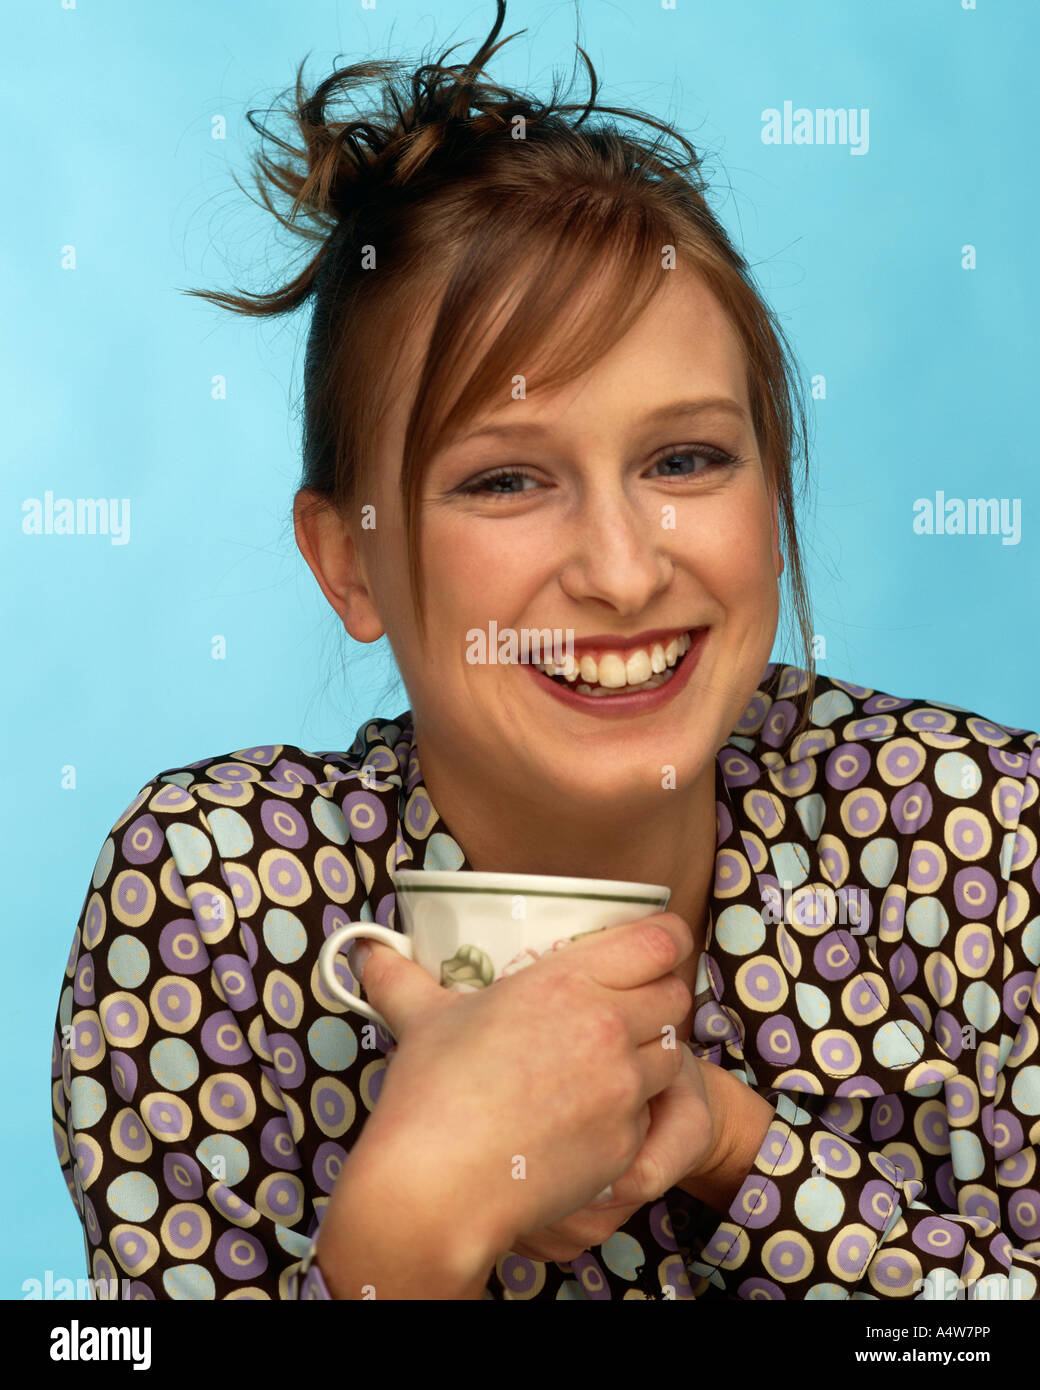 MICHELLE NORTON IN PATTERNED TOP WHITE PATTERNED CUP - Stock Image